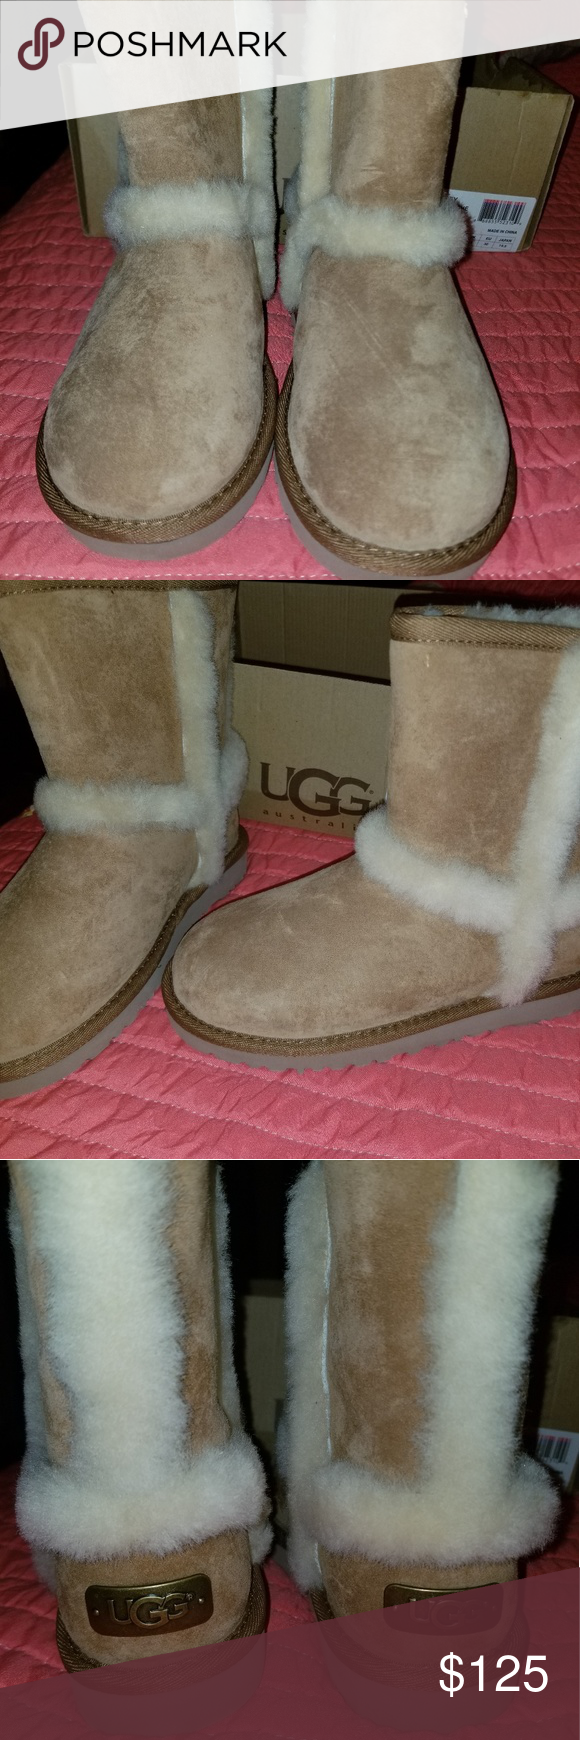 4981bb261a8 Kids Ugg Hadley boots size 13 Nwt Kids UGG boots.. brand new /never ...